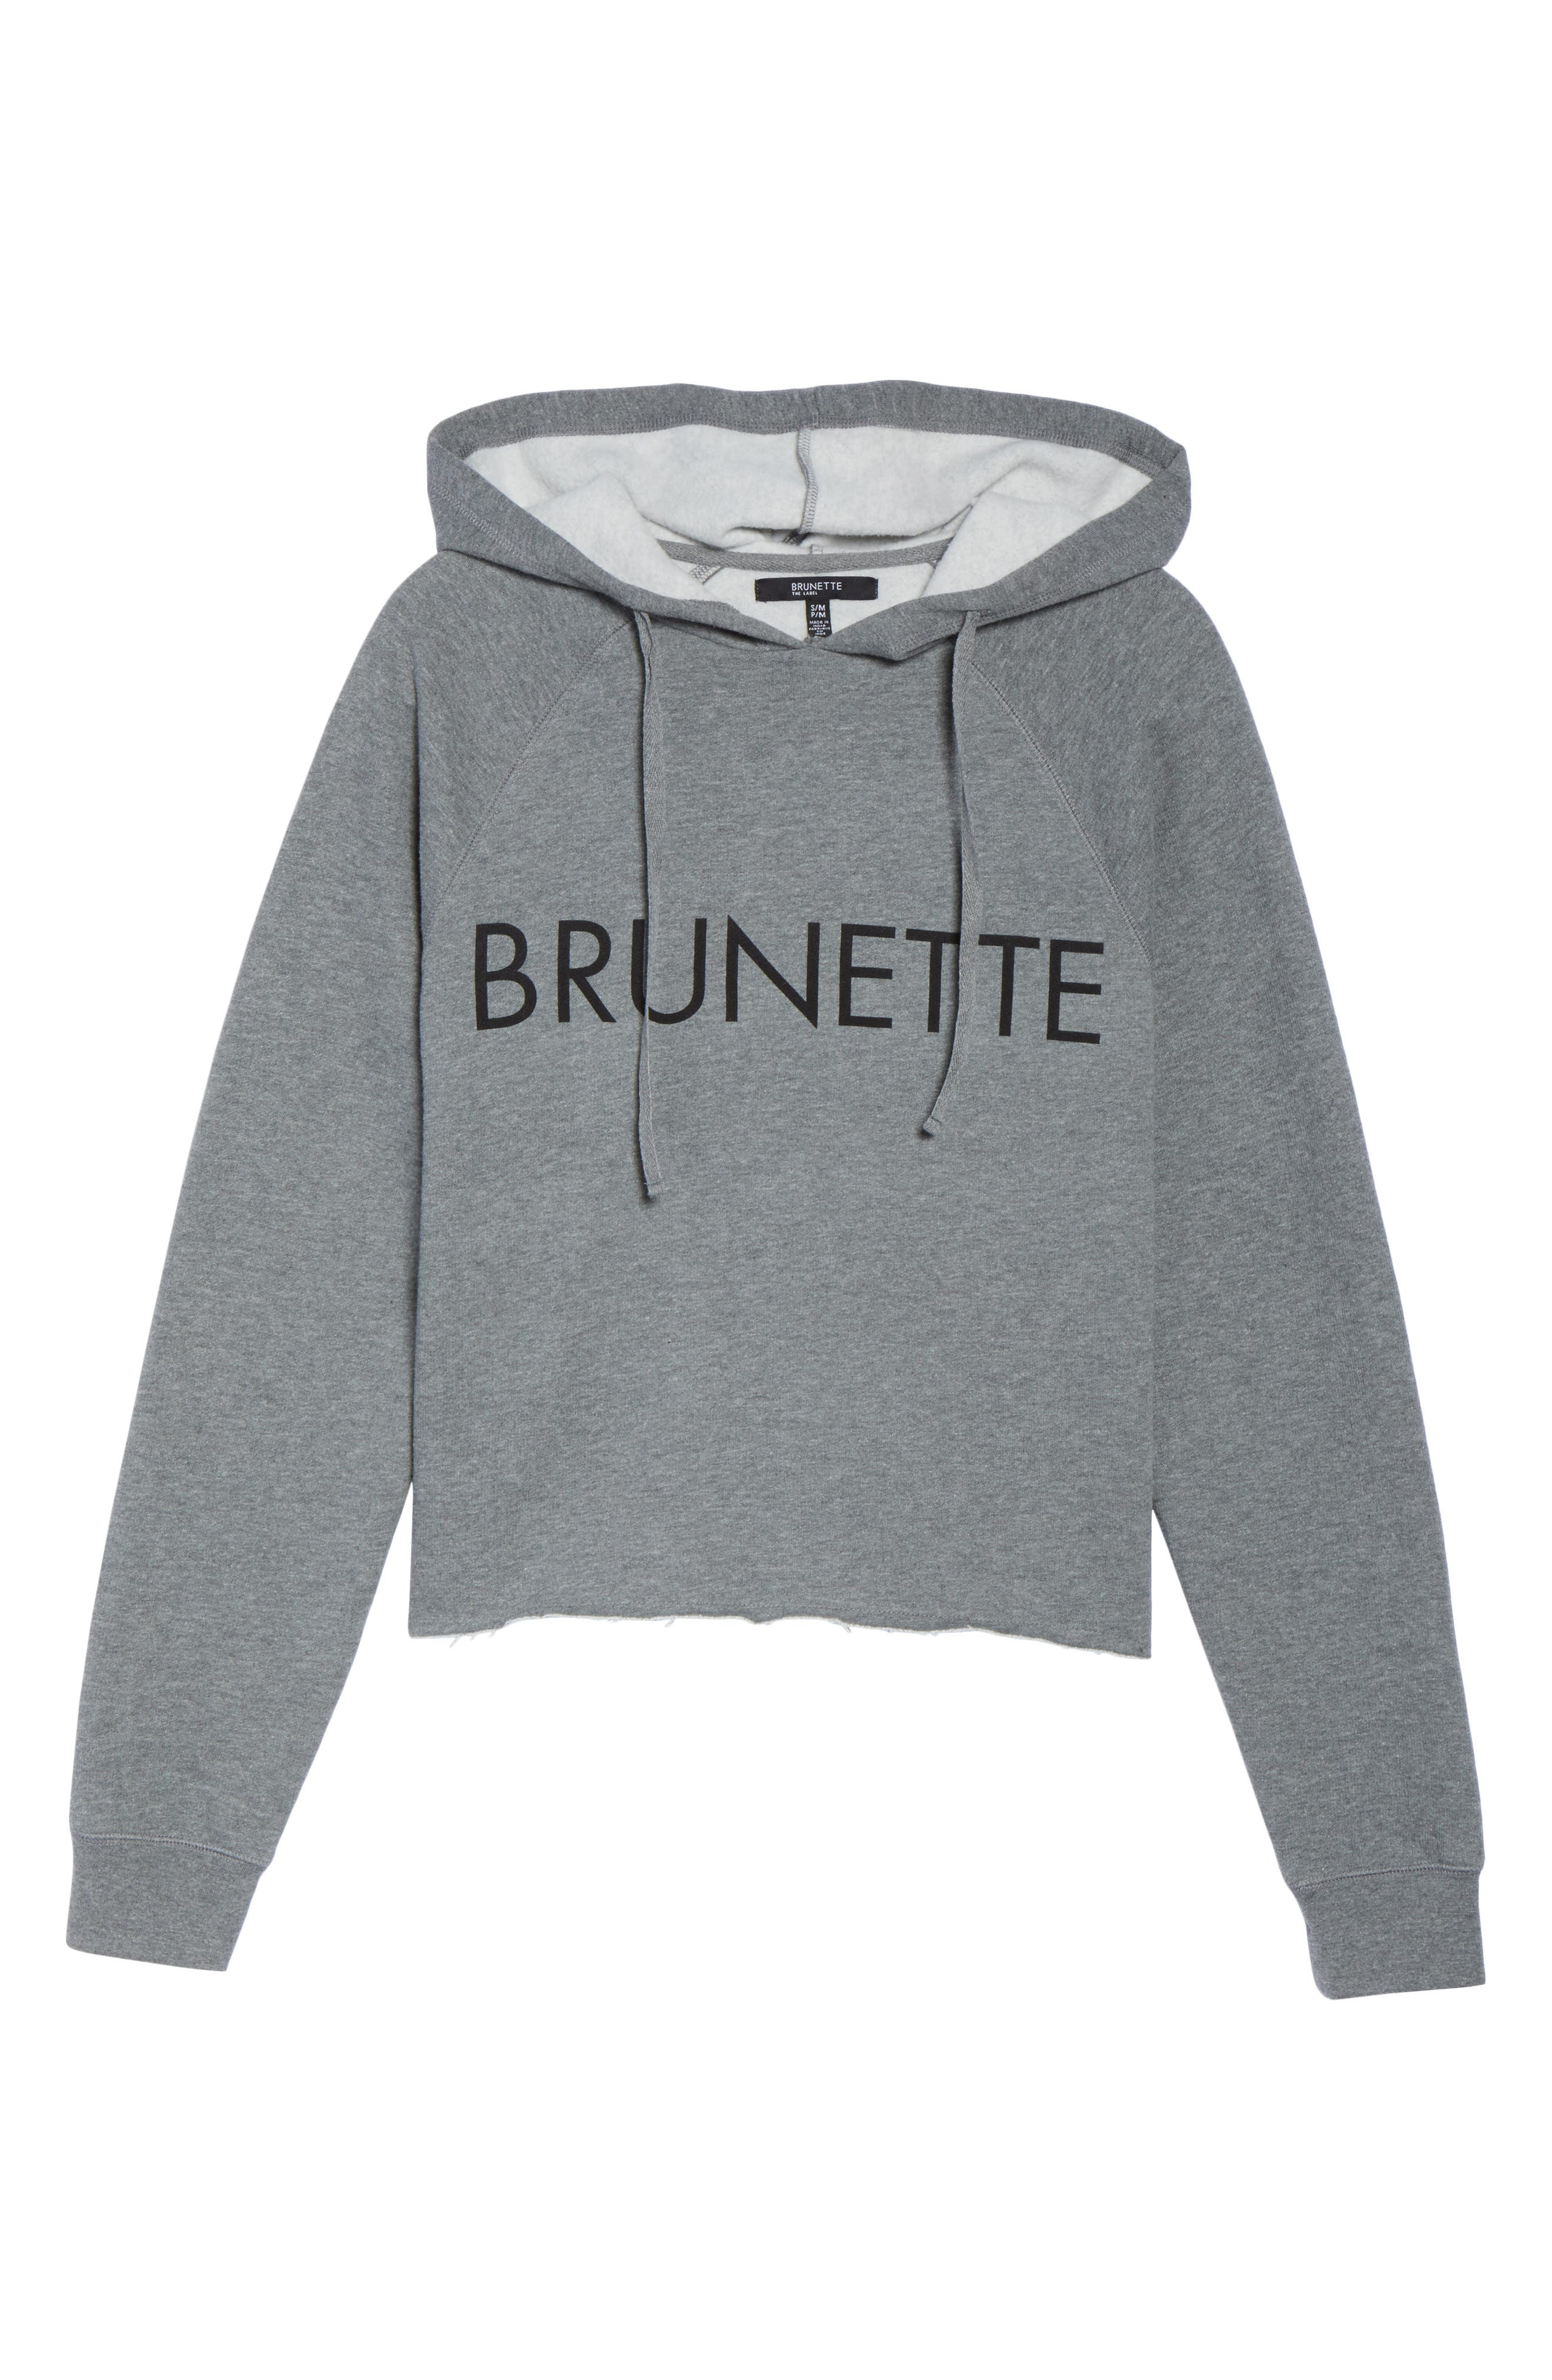 Brunette Raw Hem Hoodie,                             Alternate thumbnail 6, color,                             020